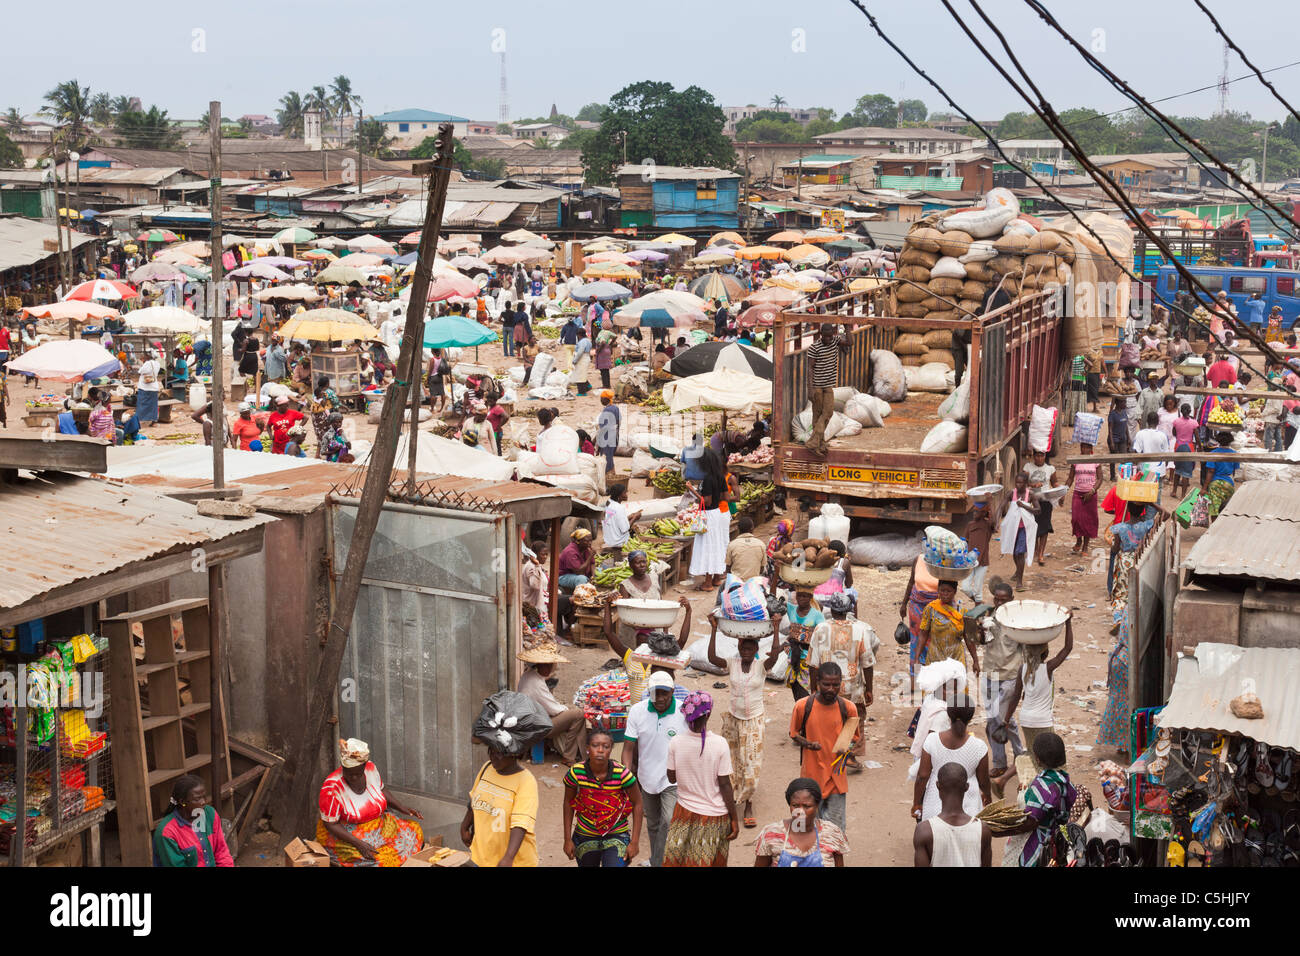 Sacks of coco beans being unloaded from an articulated trailer in a typical market scene. Agbogbloshie Market, Accra, - Stock Image